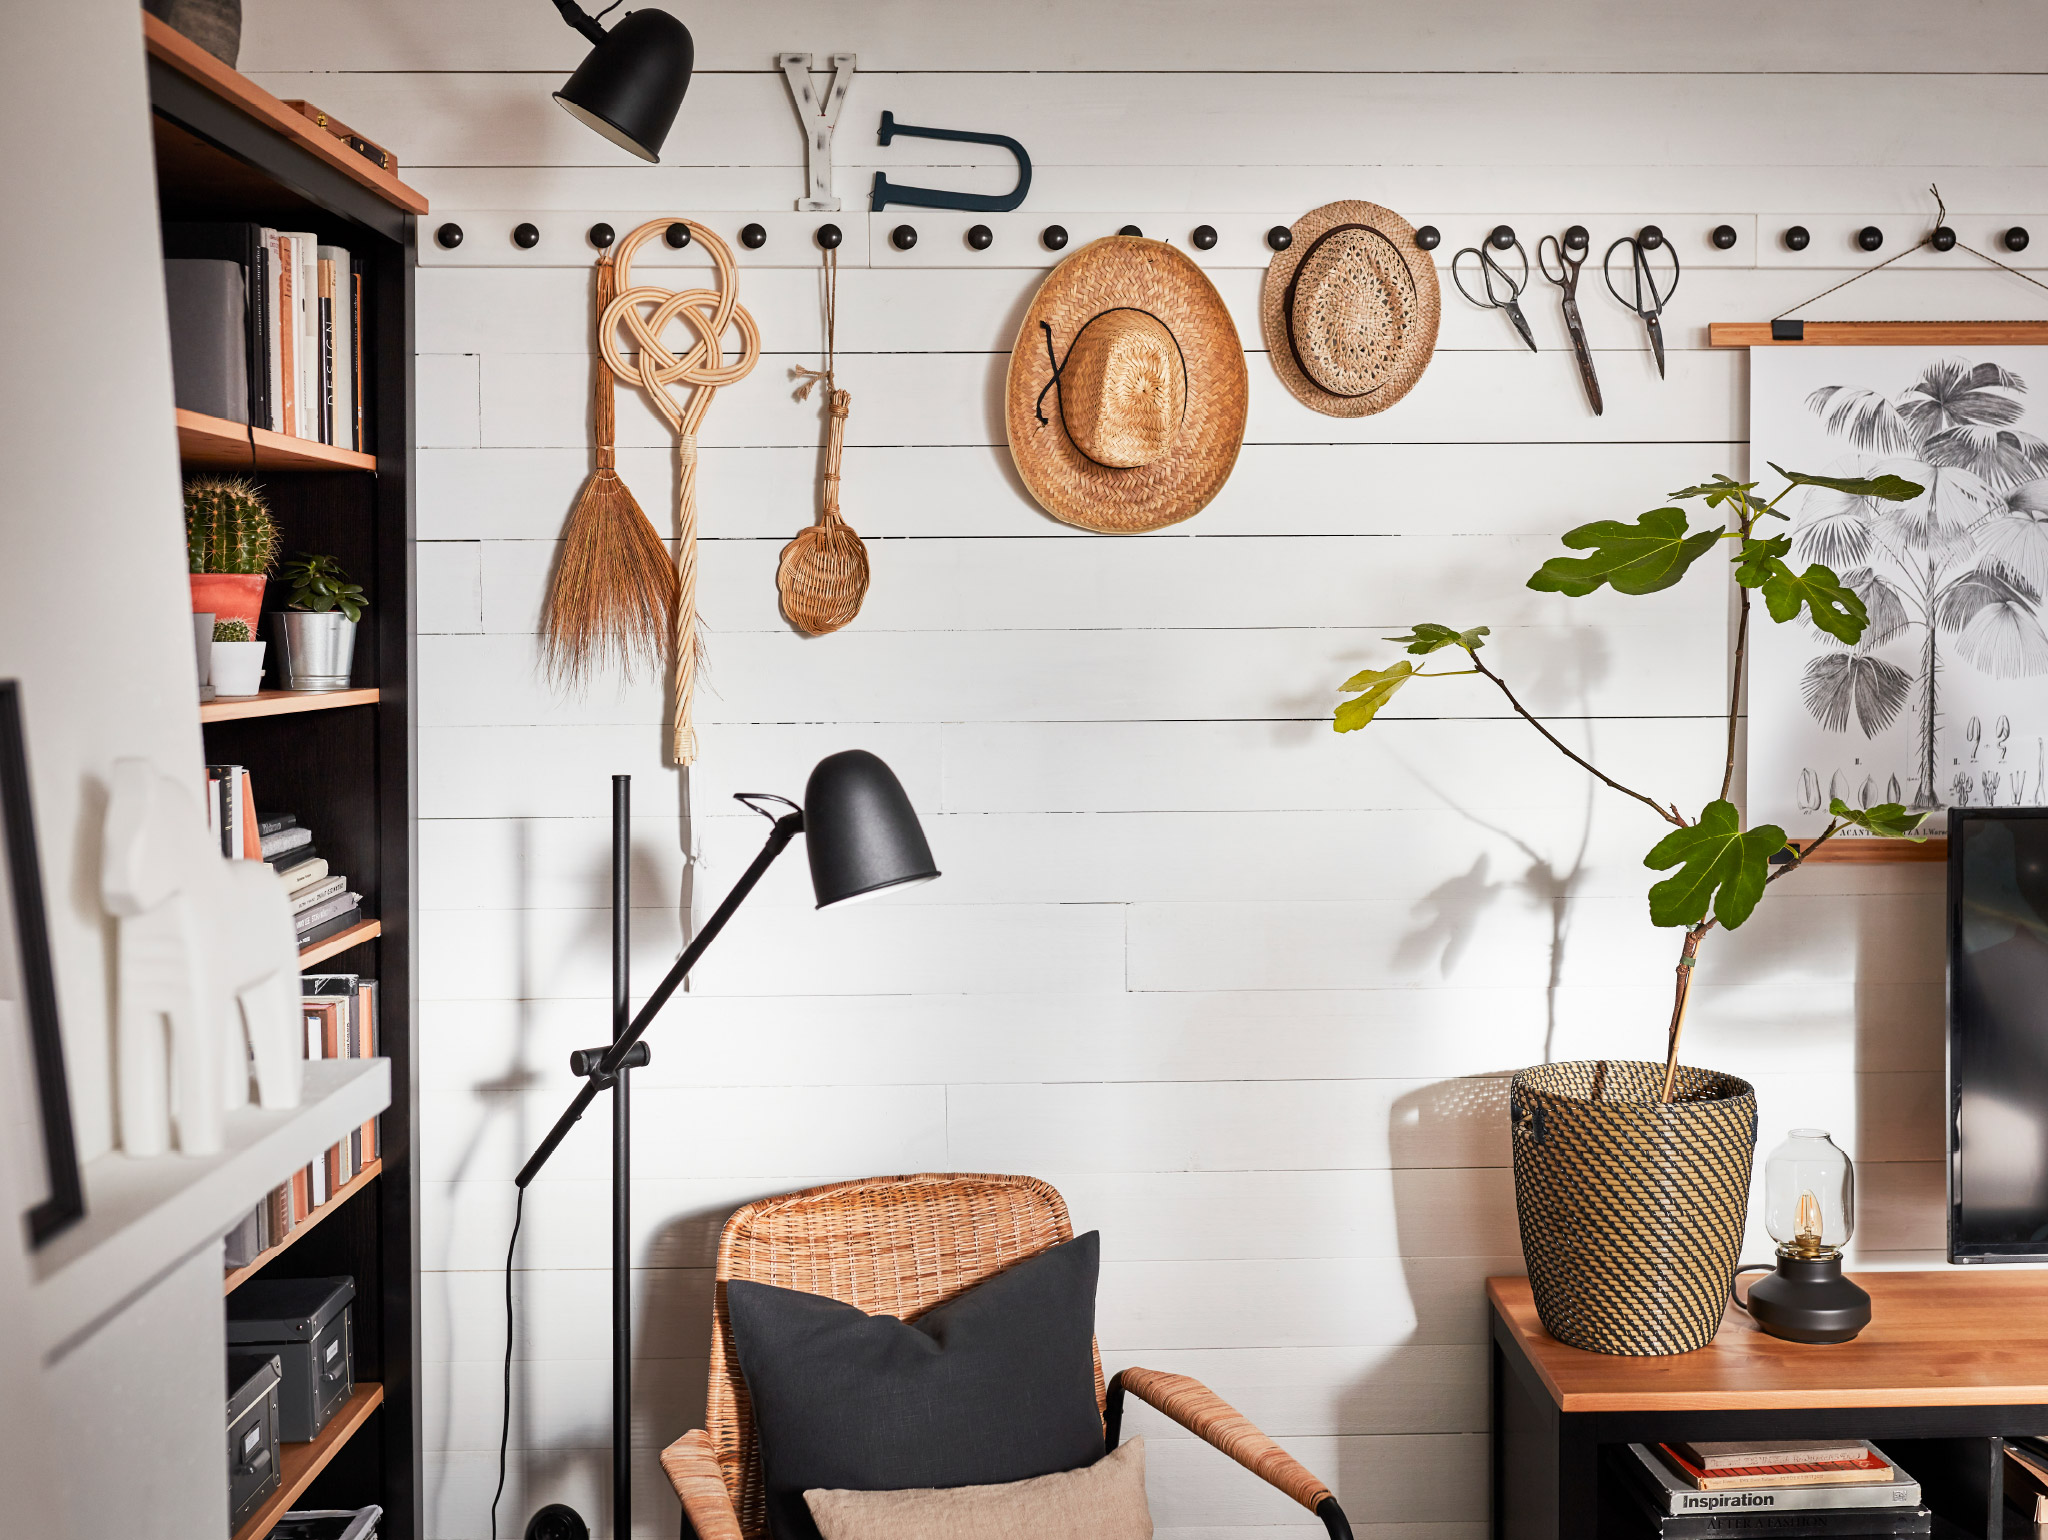 A poster with poster hanger in bamboo, decorative items and hats hang on a wall-mounted white rack with black knobs.